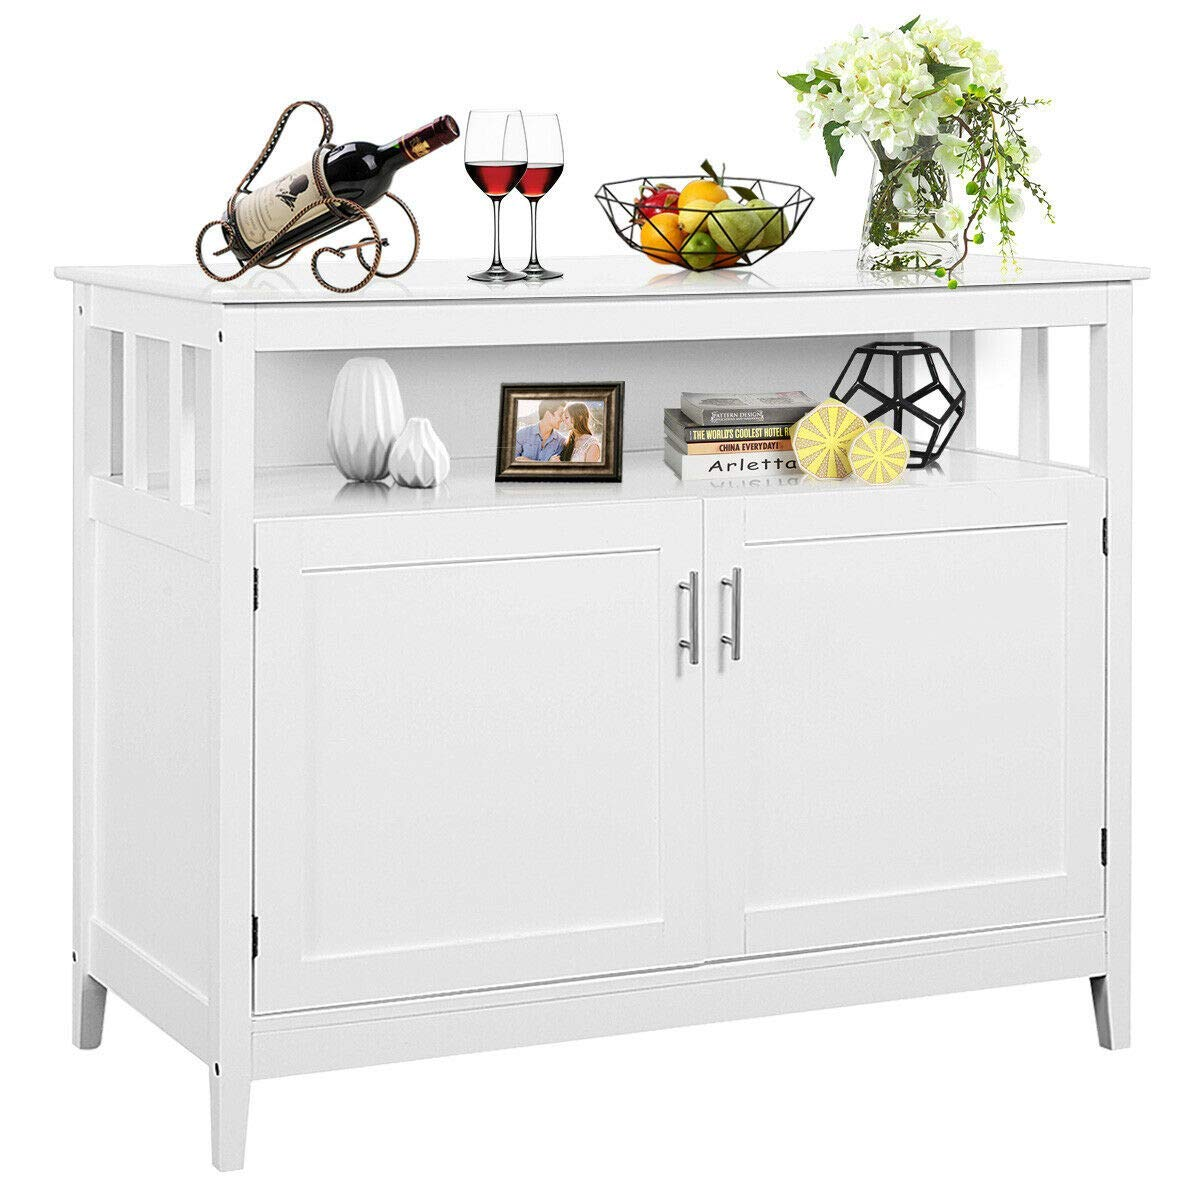 Costzon Kitchen Storage Sideboard Dining Buffet Server Cabinet Cupboard, Free Standing Storage Chest with 2 Level Cabinets and Open Shelf, Adjustable Middle Shelf for Home, Dining Room White